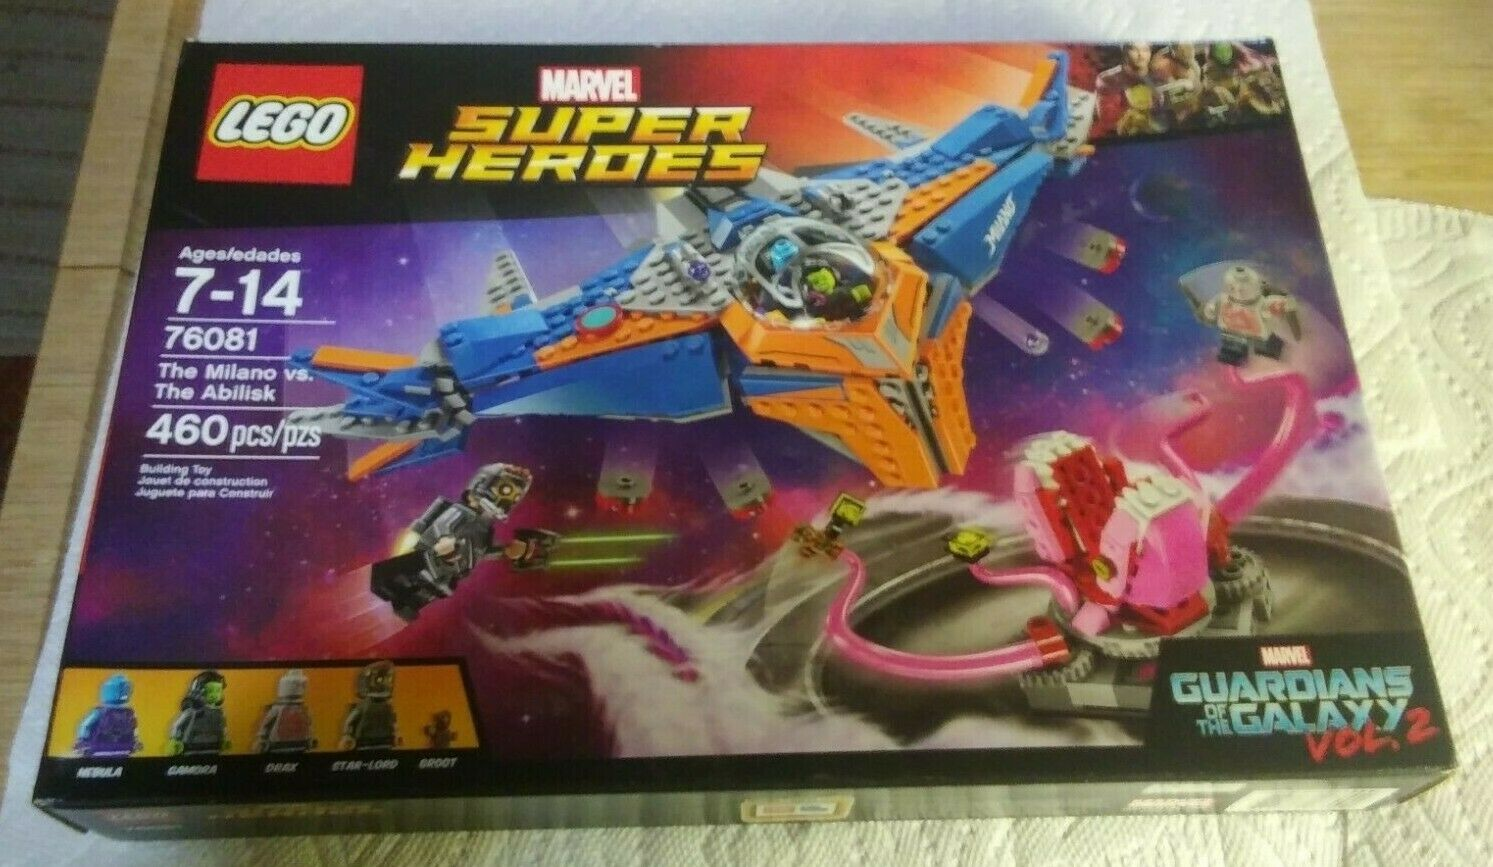 Lego marvel super heroes 76081